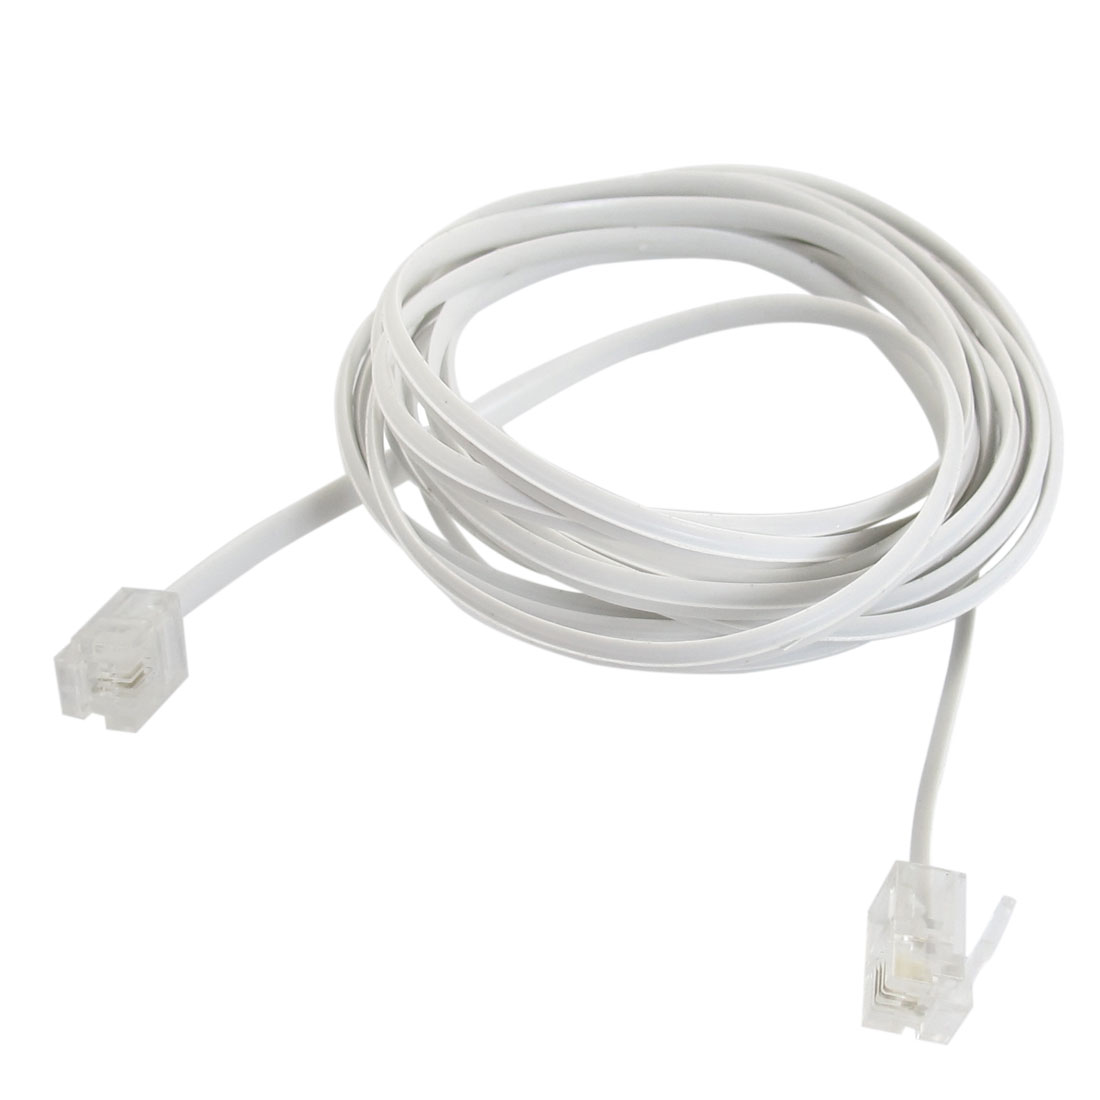 6P2C RJ11 to RJ11 Clear Module Telephone Extend Cord 3 Meters